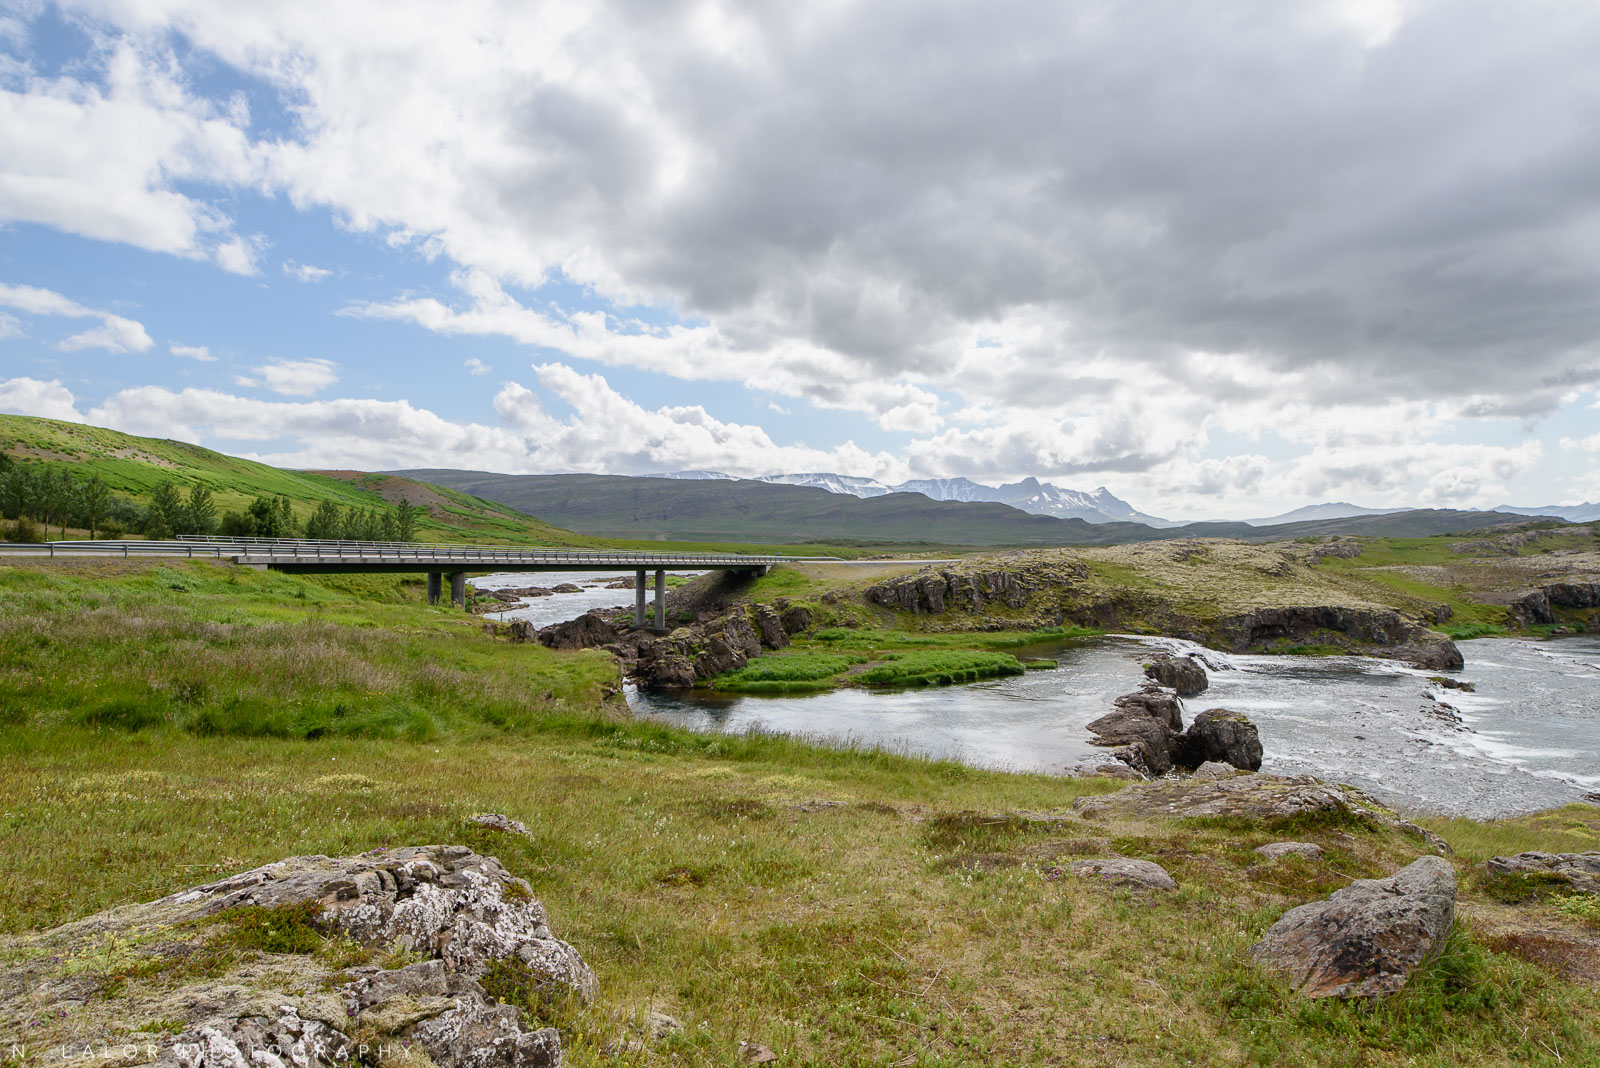 Rivers and bridges. From my trip to Iceland in 2018. Photograph by Nataliya Lalor.